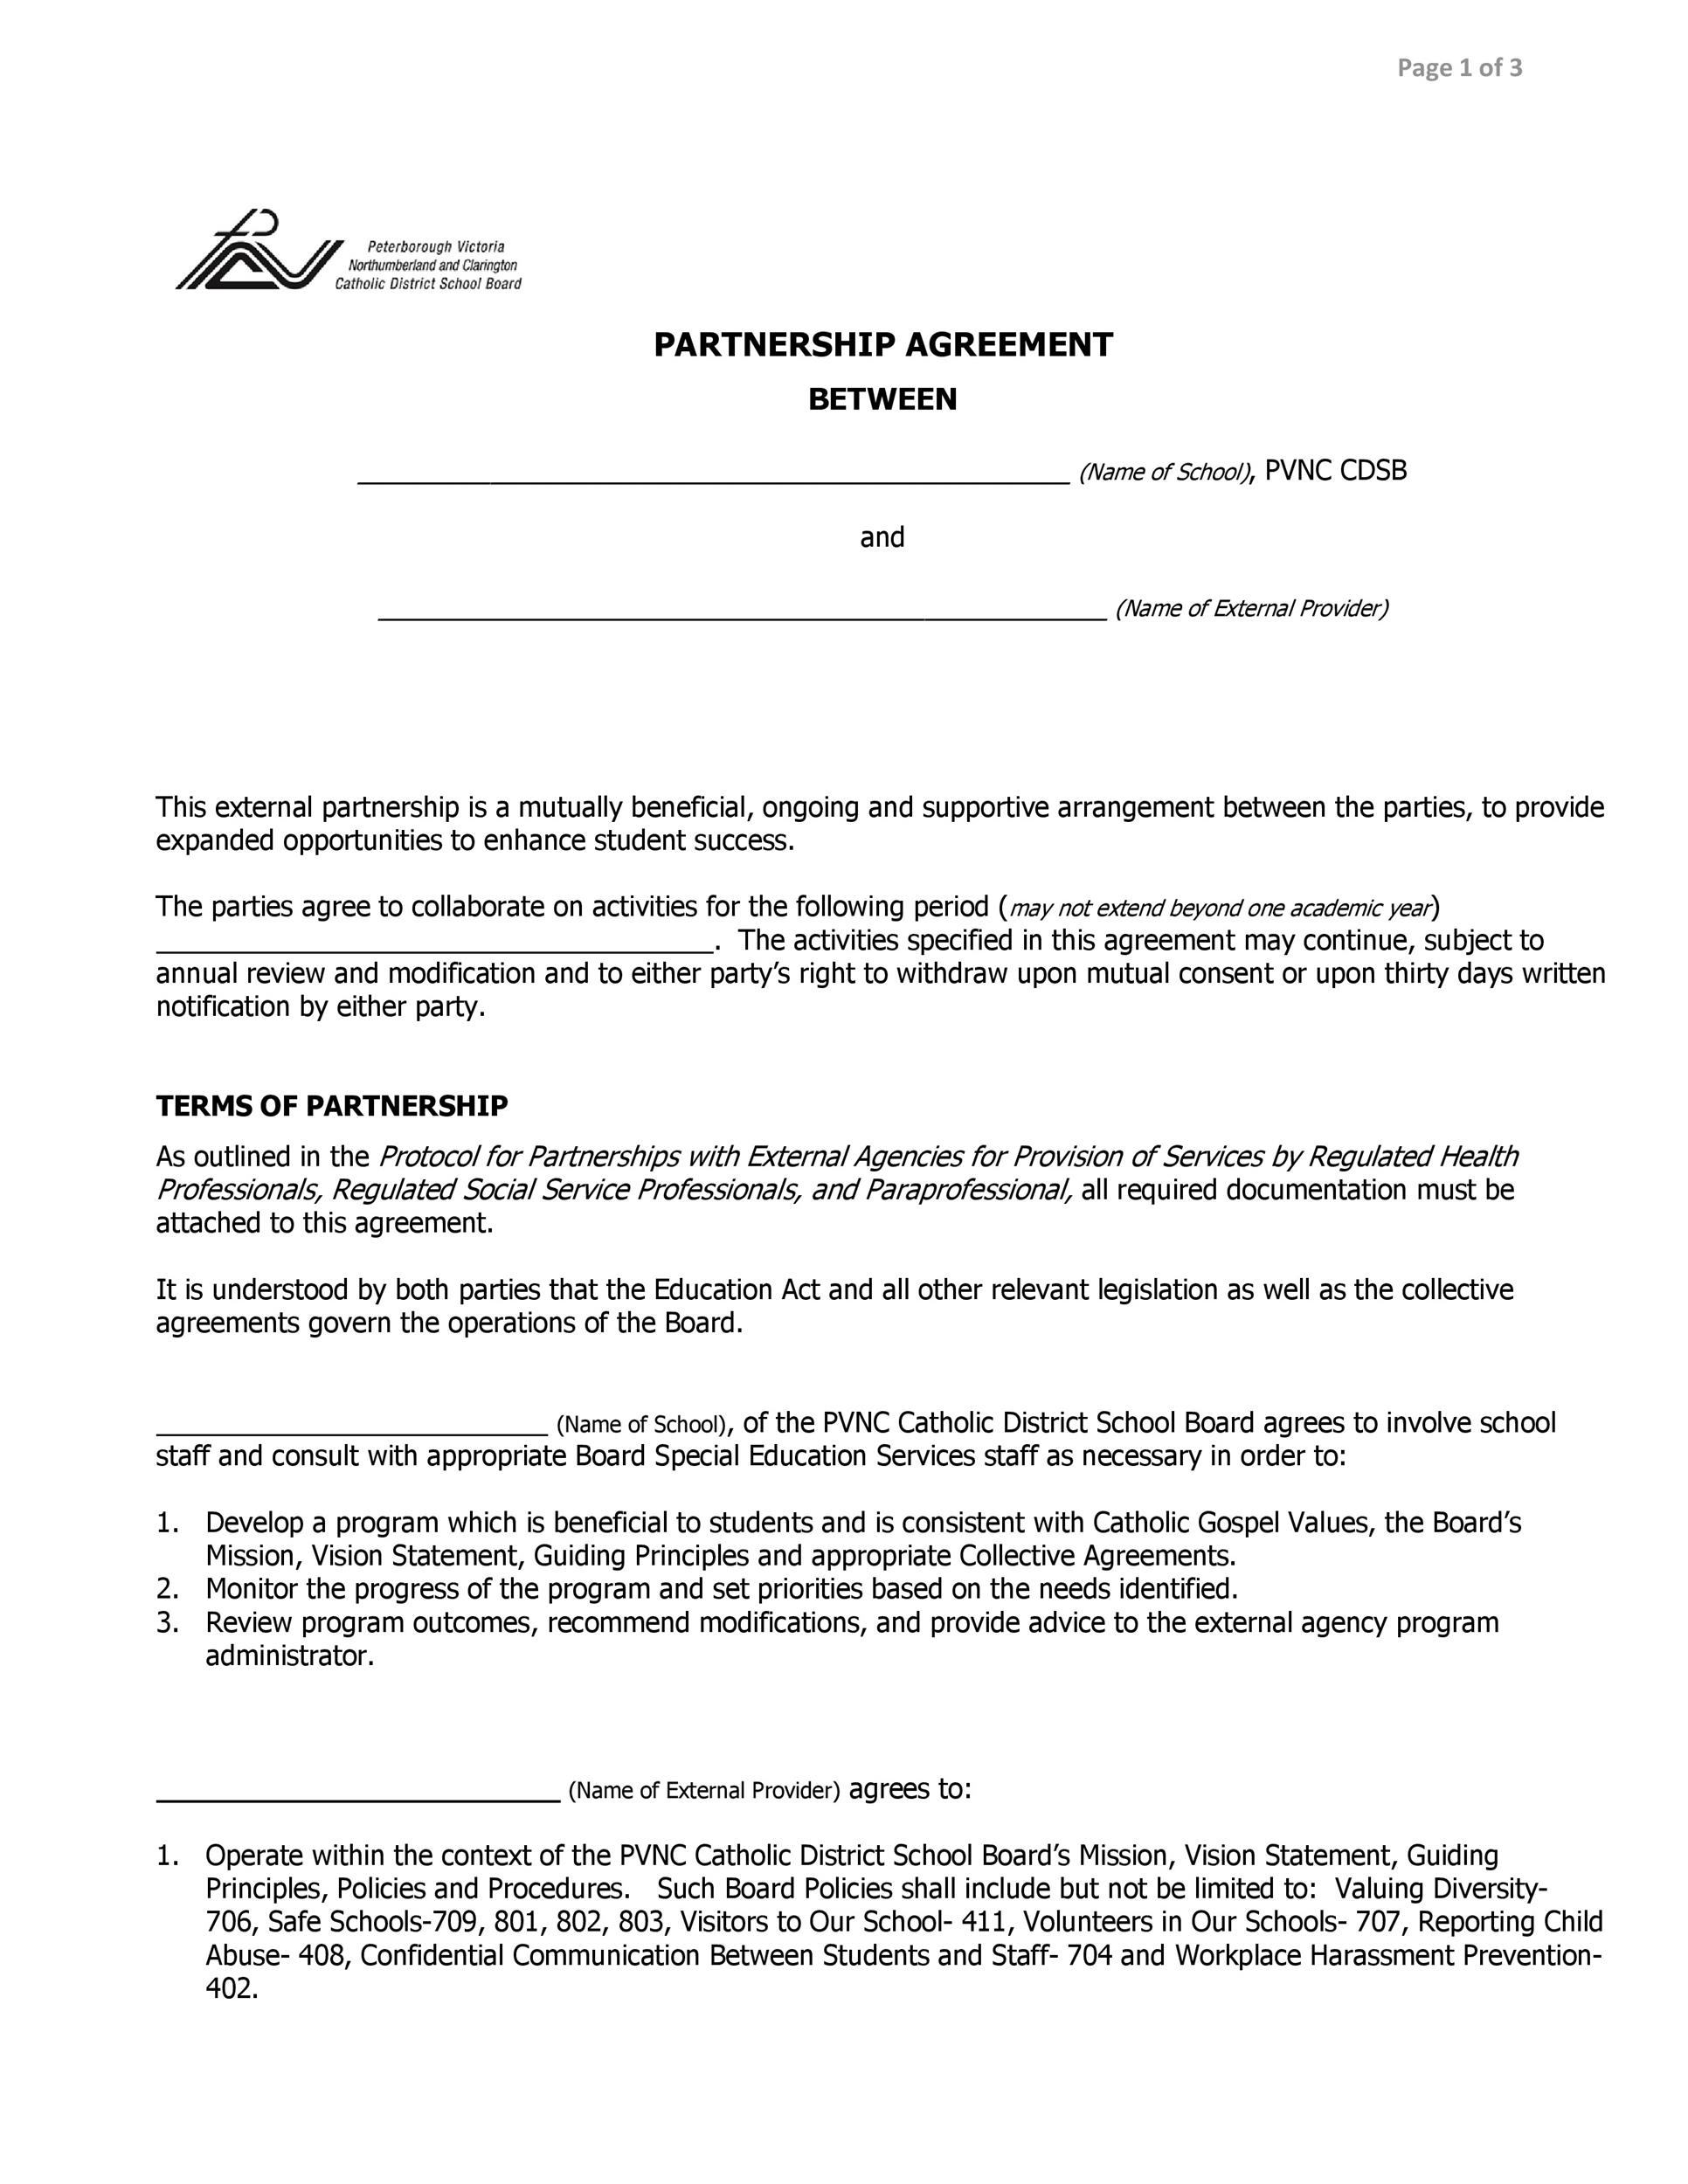 Free Partnership Agreement Template 31